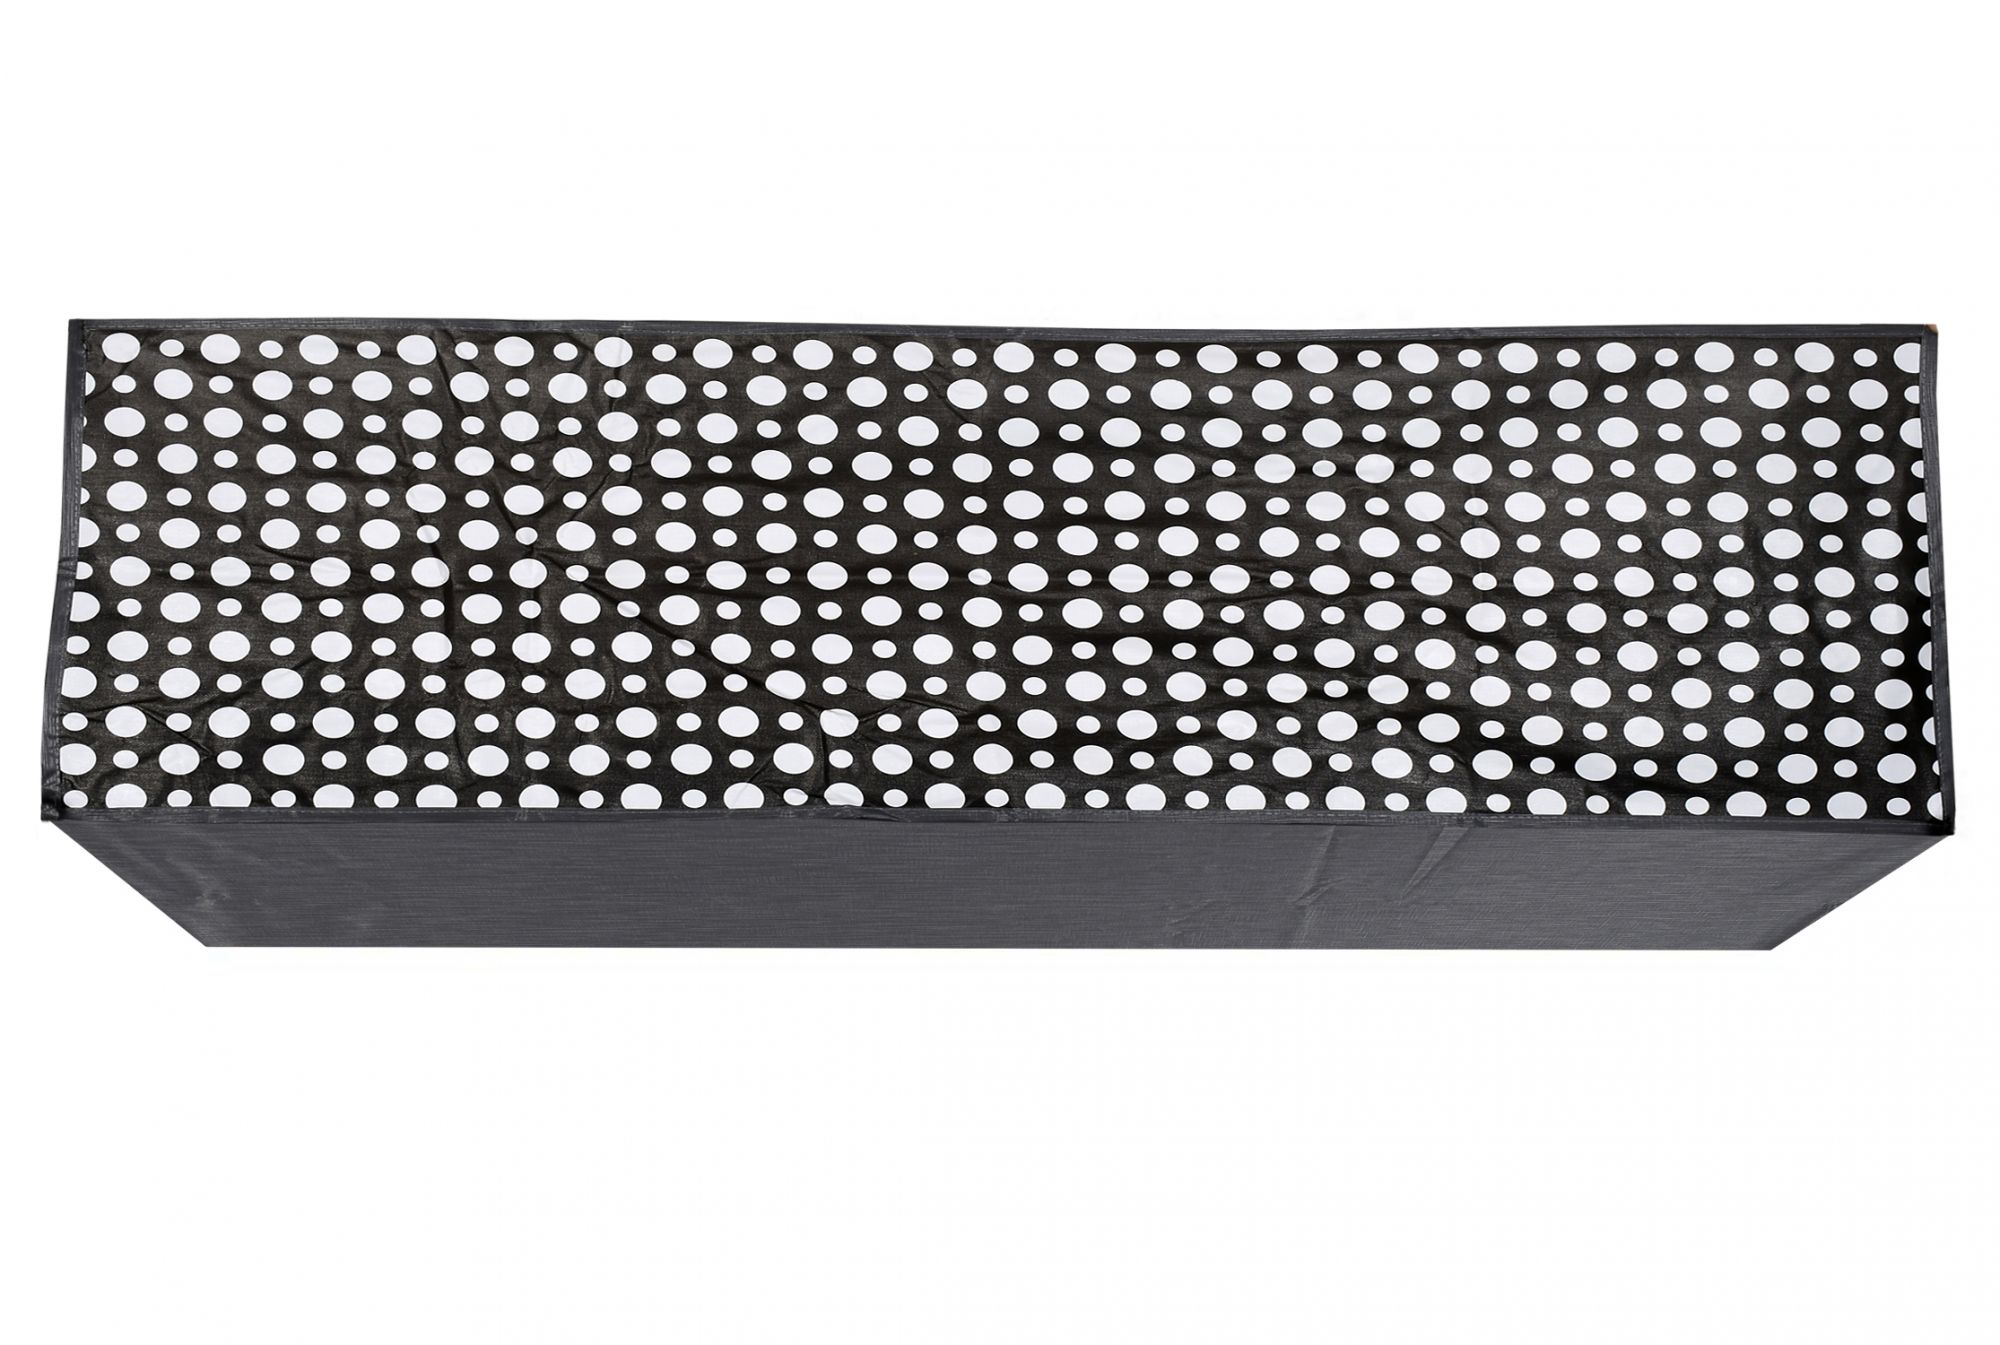 Kuber Industries Polka Dots Design PVC Air Conditioning Dust Cover Waterproof Folding Spilt Ac Cover for 1.5 Ton Indoor Unit (Grey) - CTKTC40721